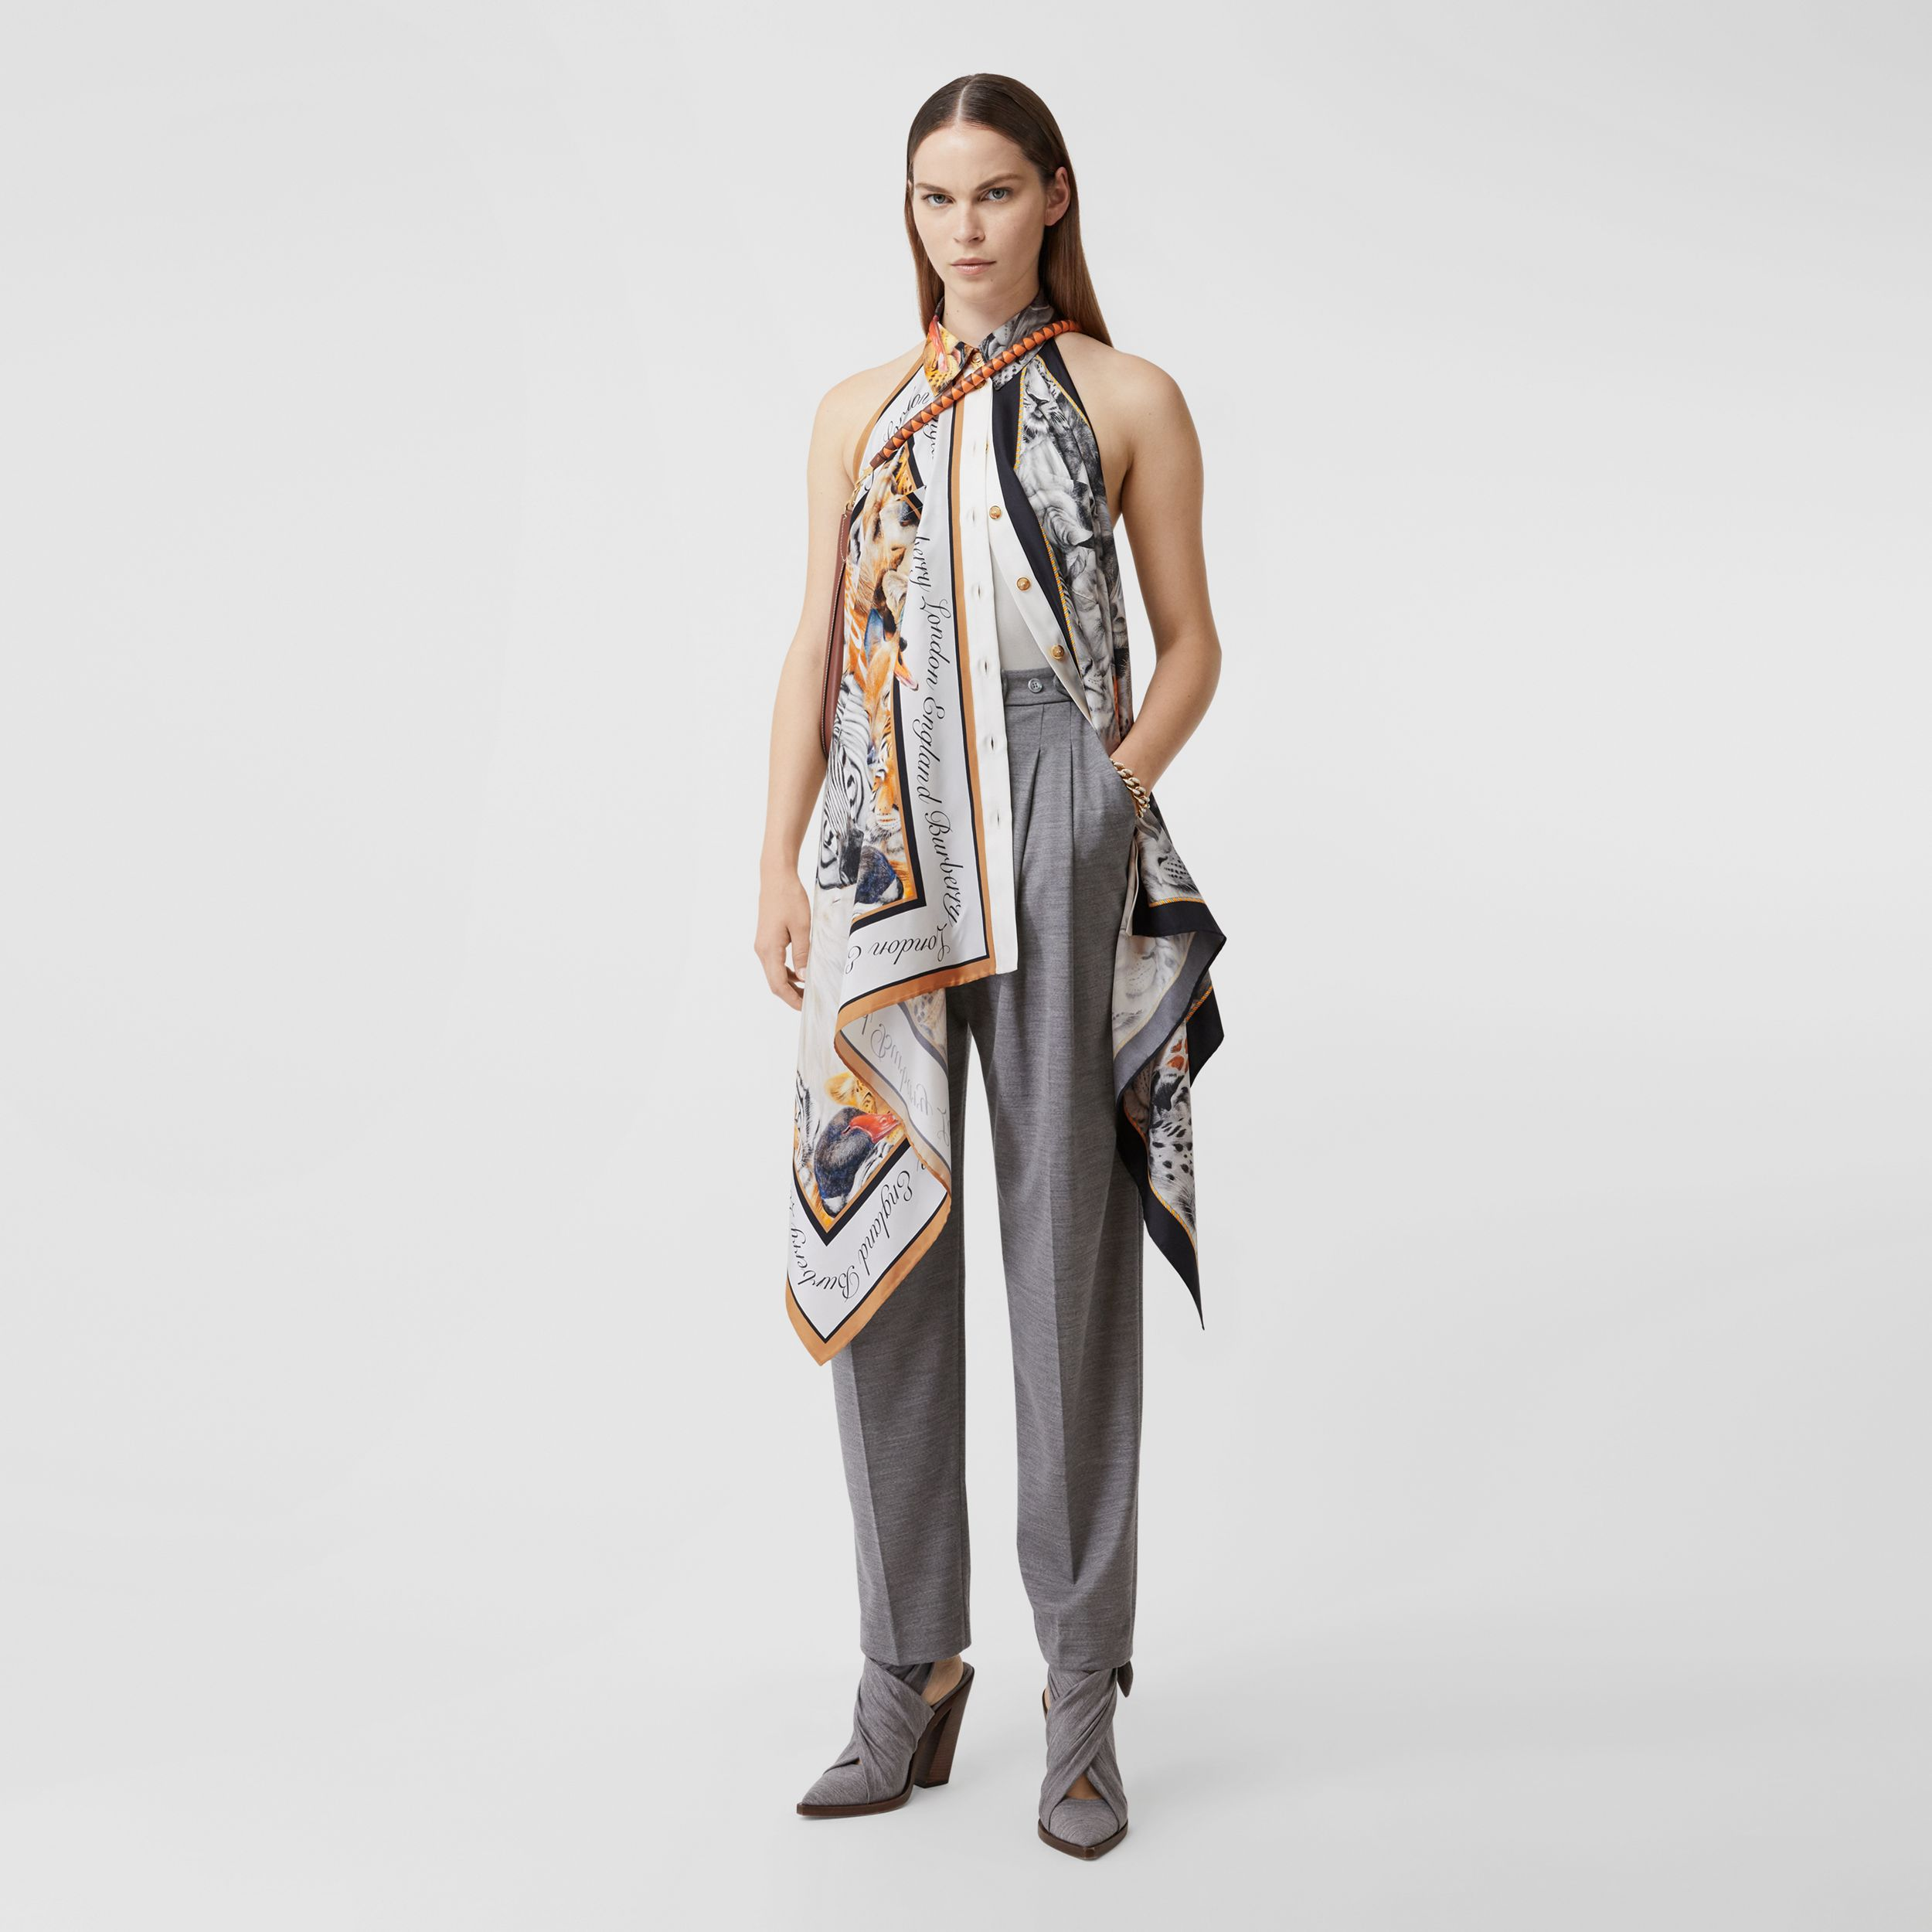 Animalia Print Silk Scarf Panel Bodysuit in Grey Melange - Women | Burberry - 1